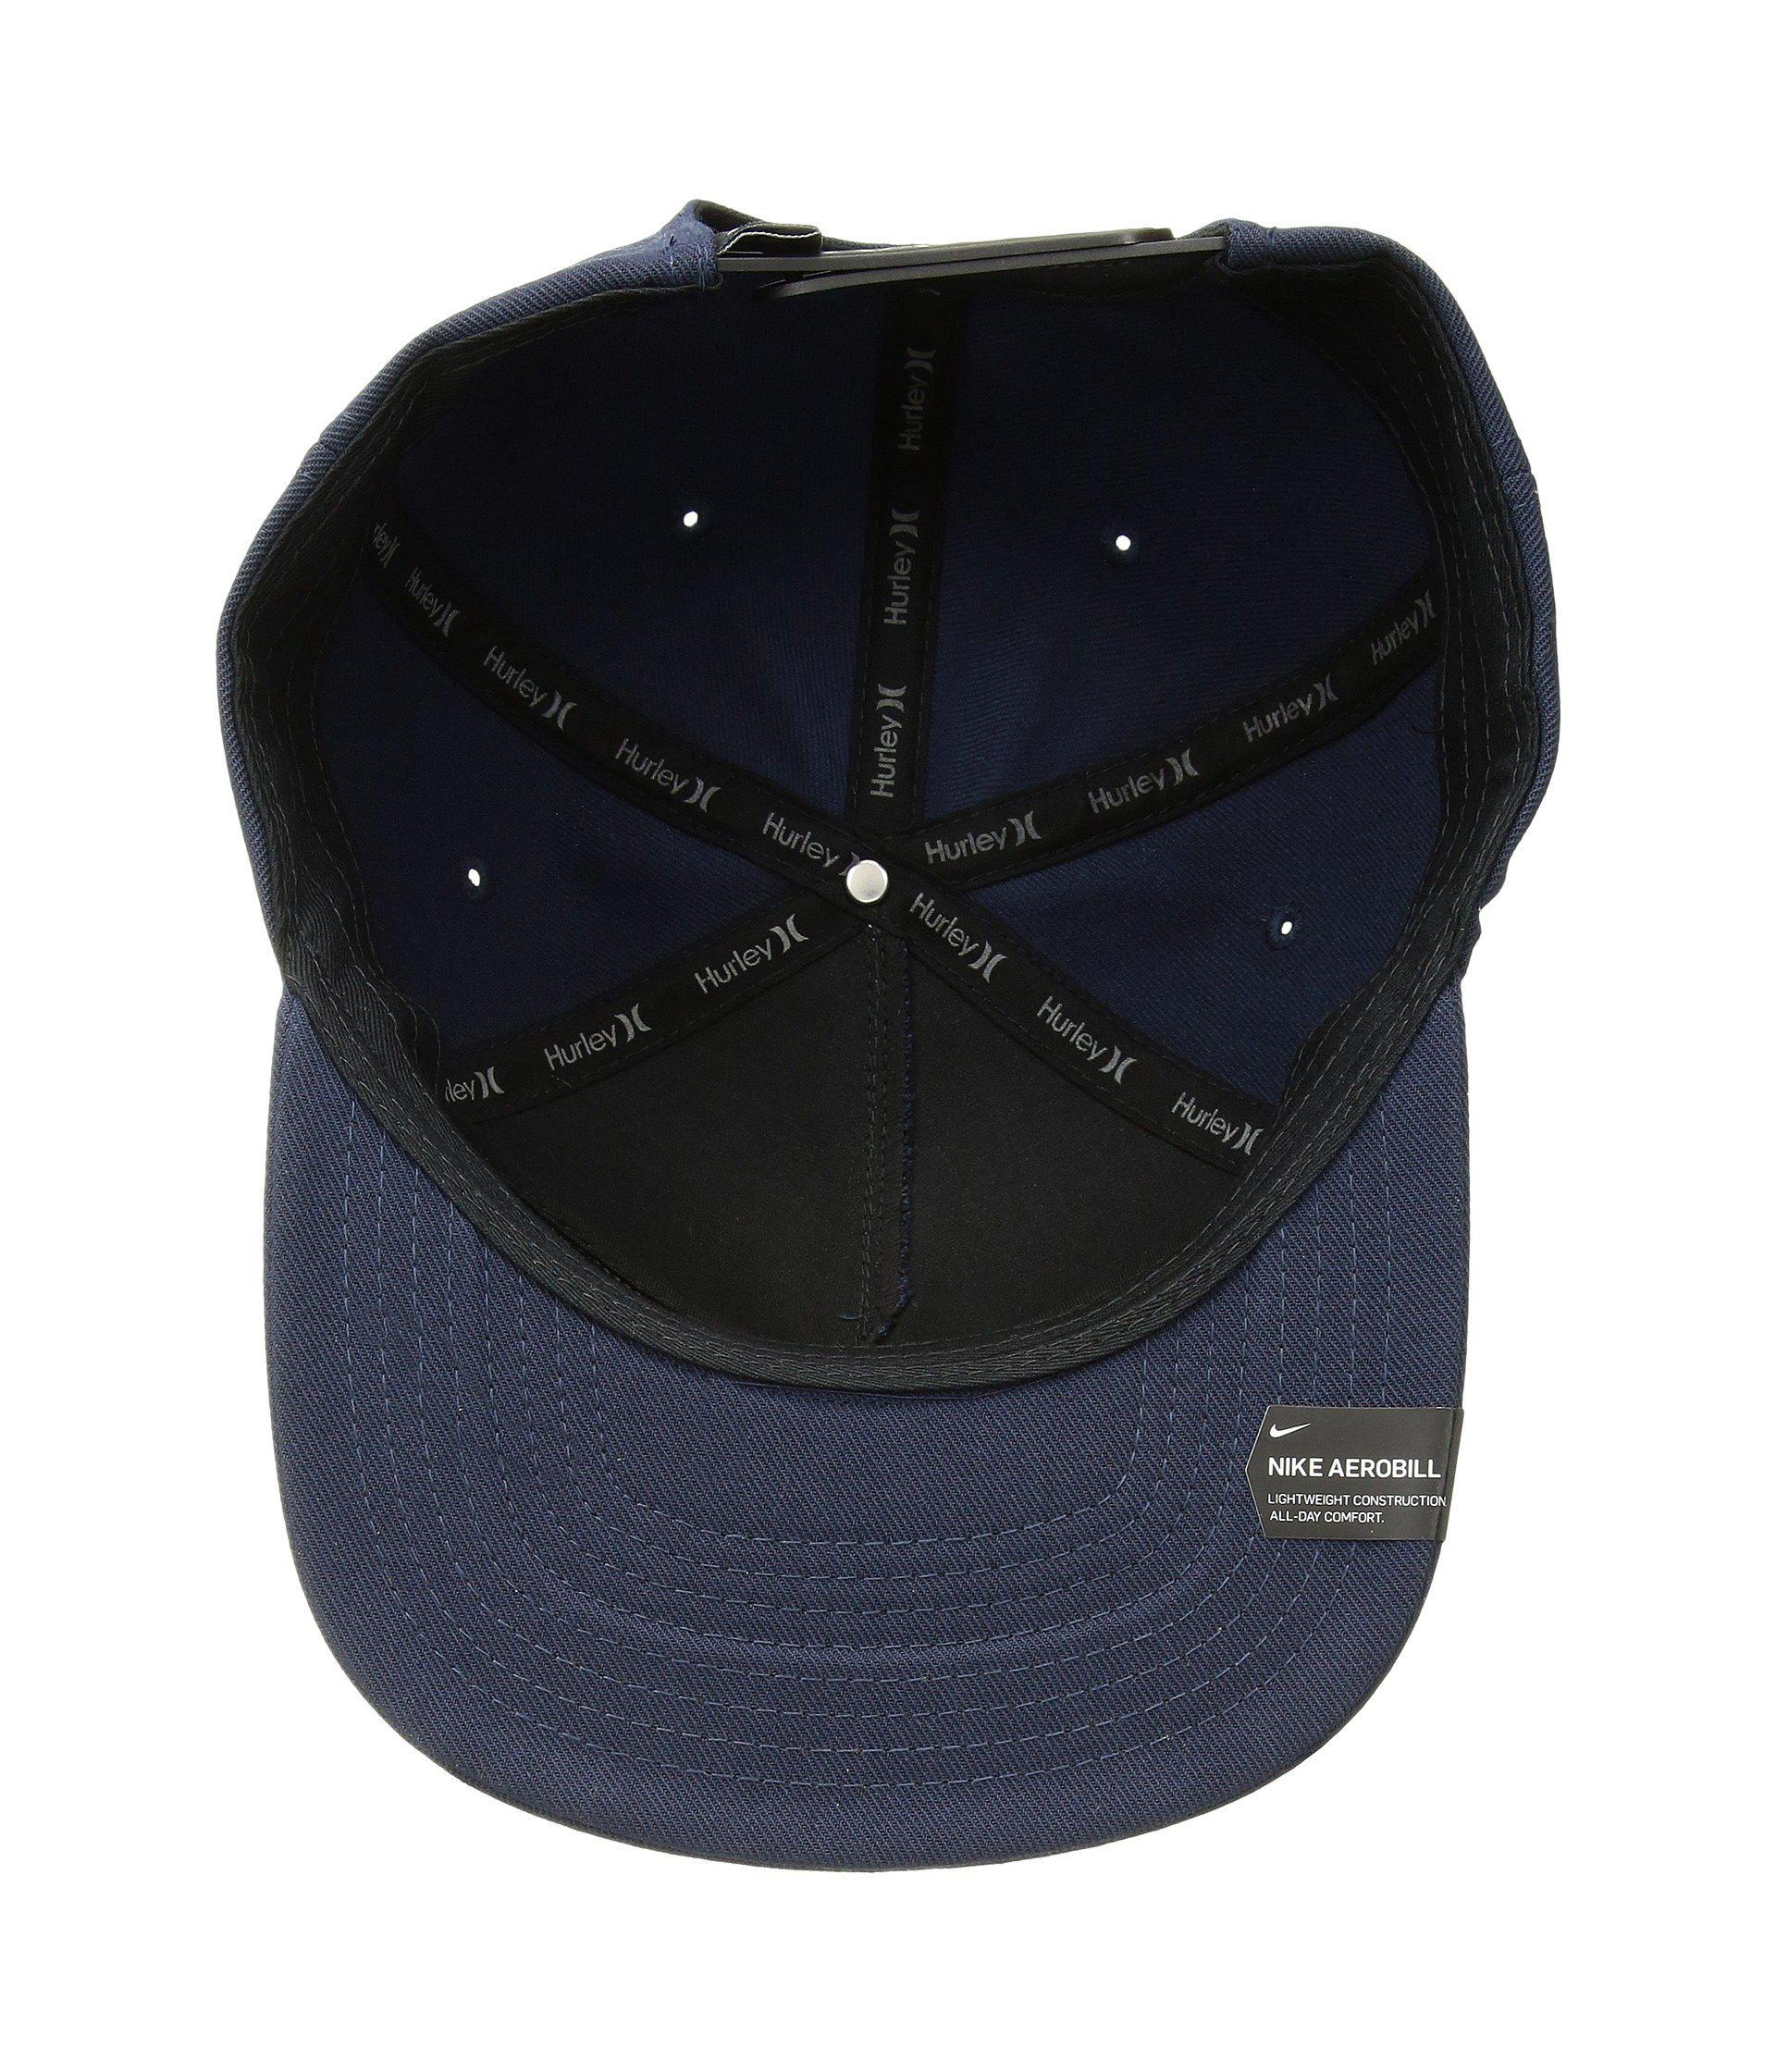 6a952214075 Lyst - Hurley Circular Hat (anthracite) Caps in Blue for Men - Save 32%